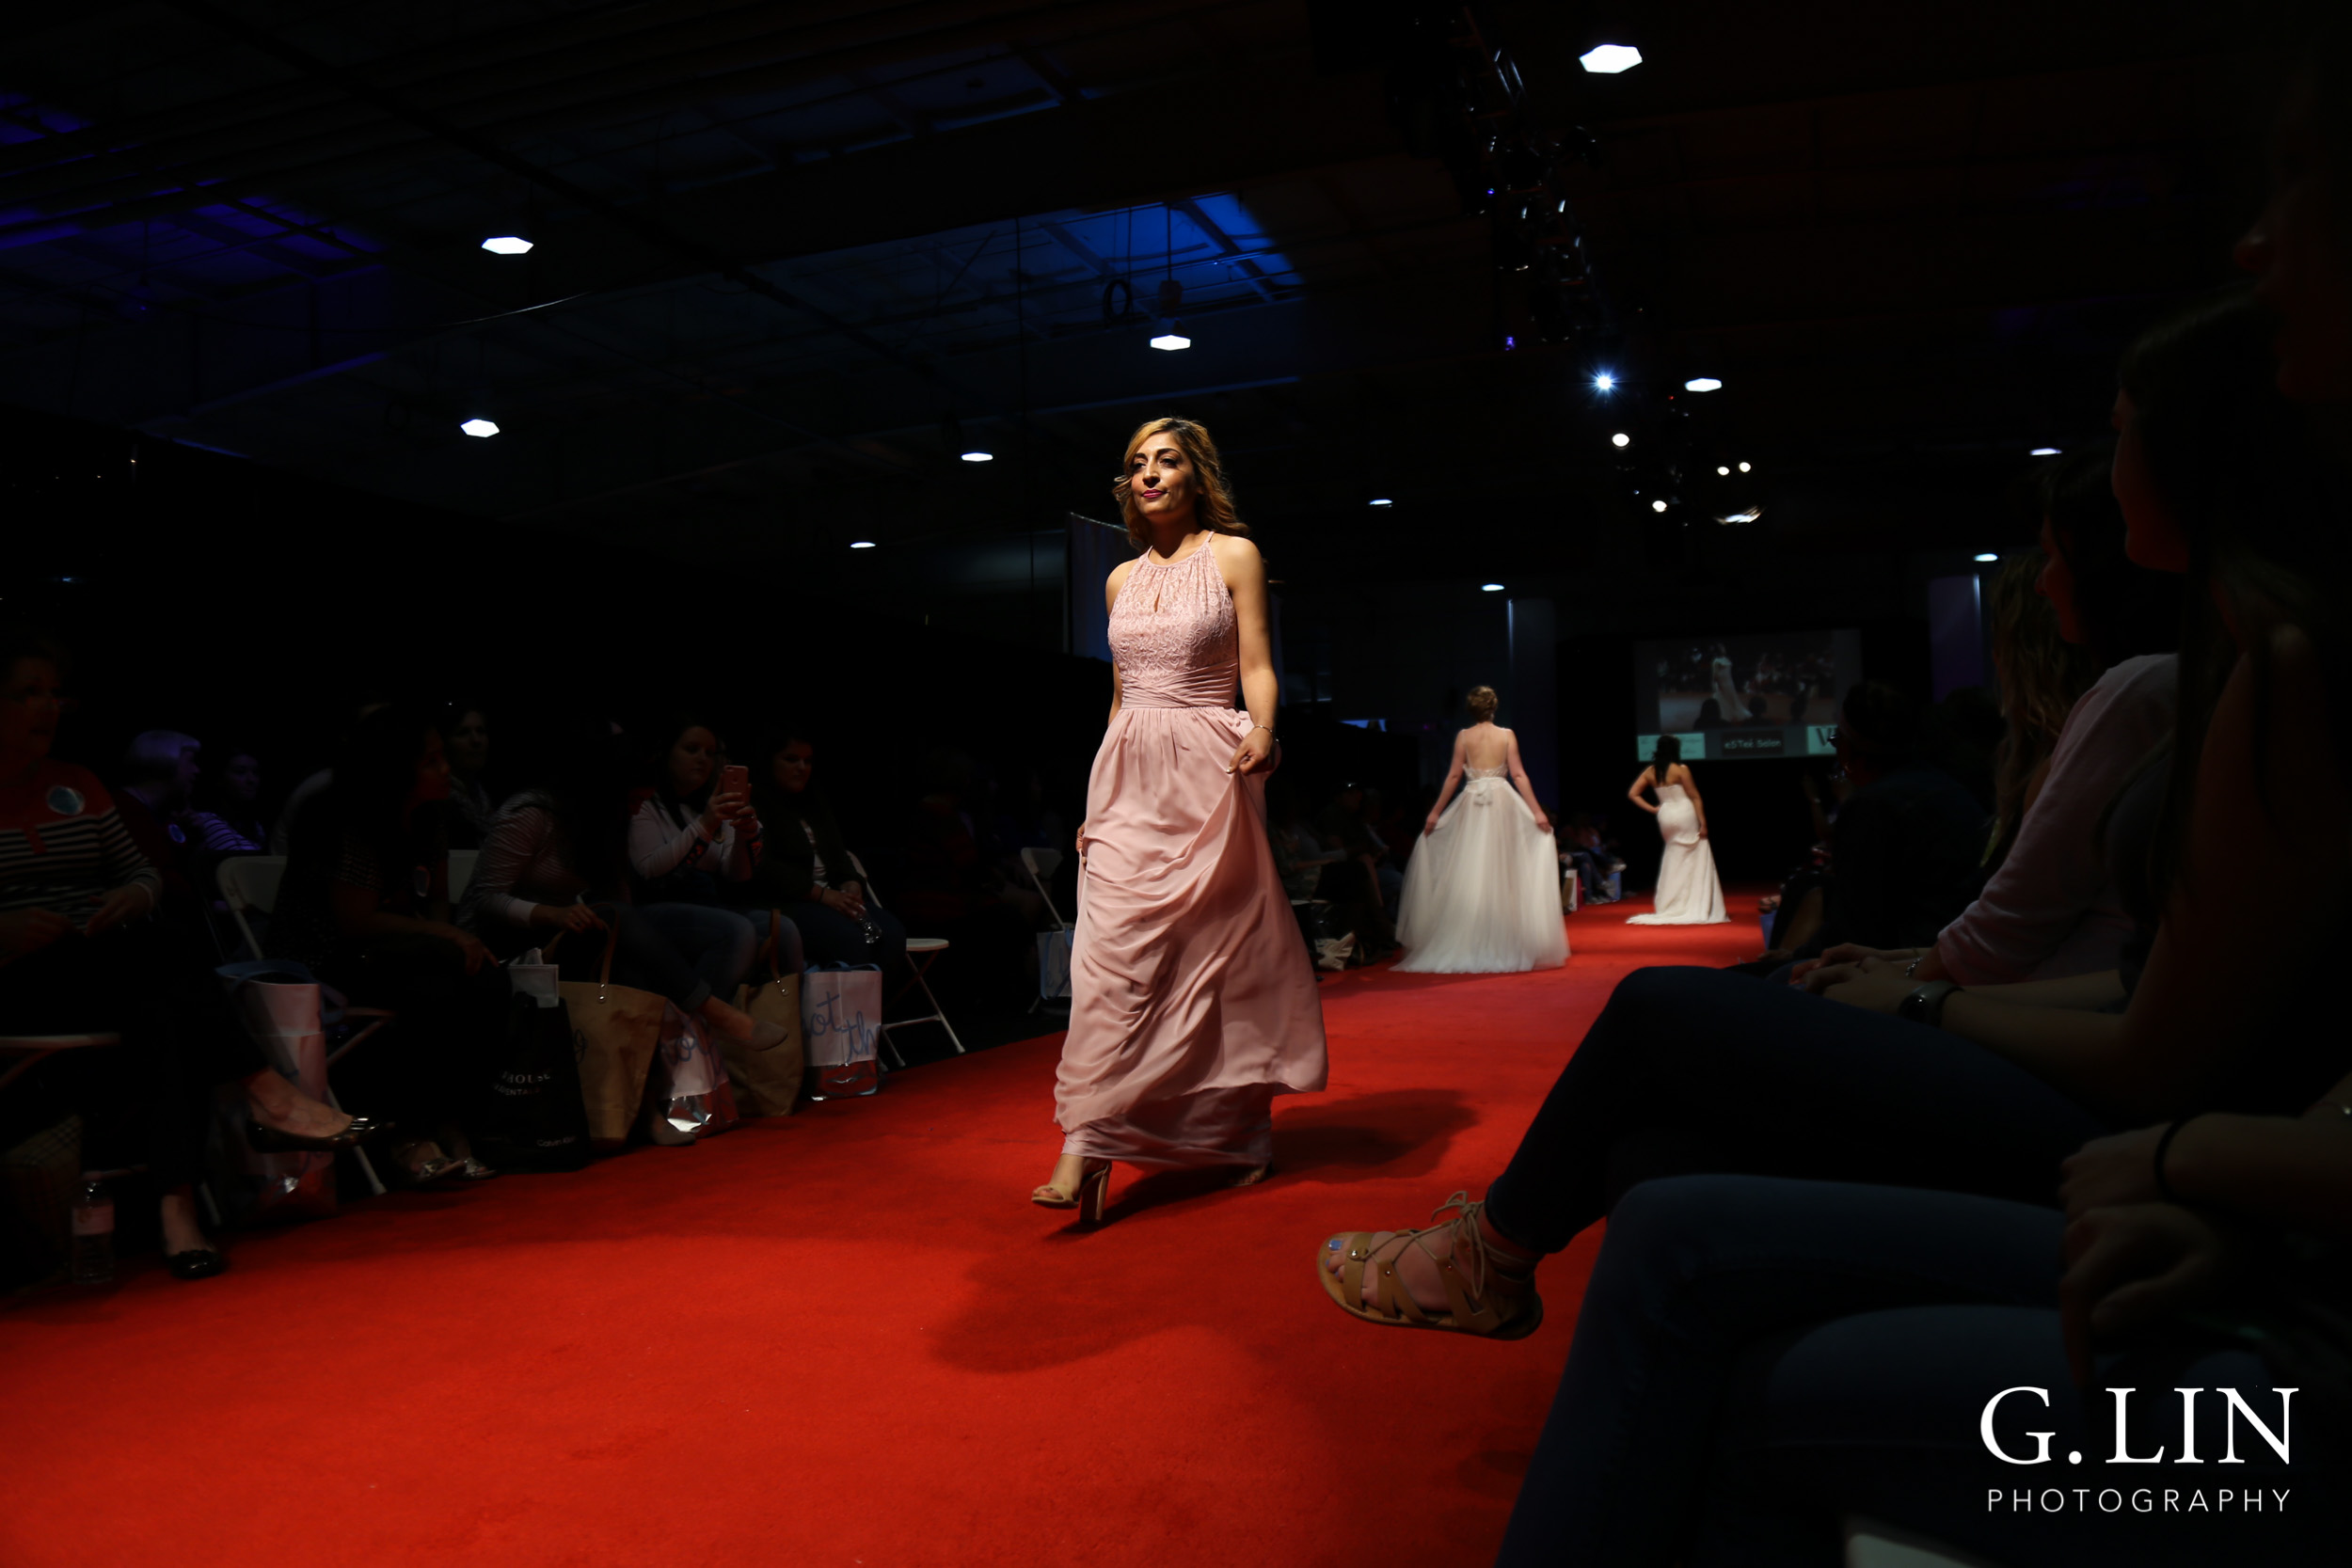 Raleigh Event Photographer | G. Lin Photography | Model wearing bridesmaid gown and walking down the runway